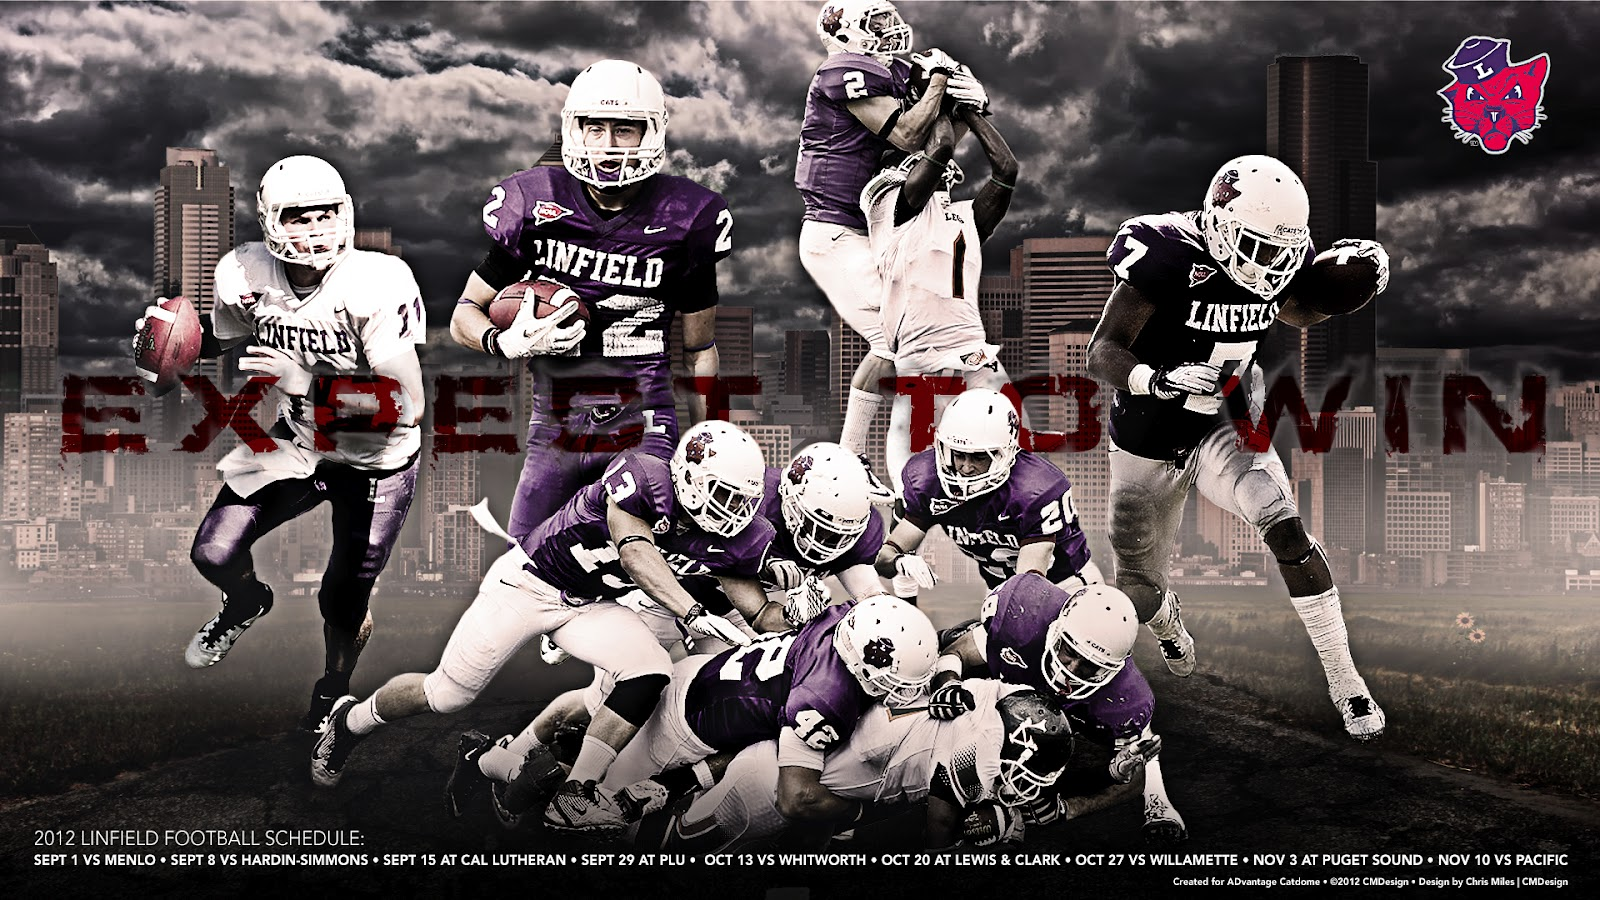 Advantage Catdome 2012 Linfield Football Wallpaper Is Here